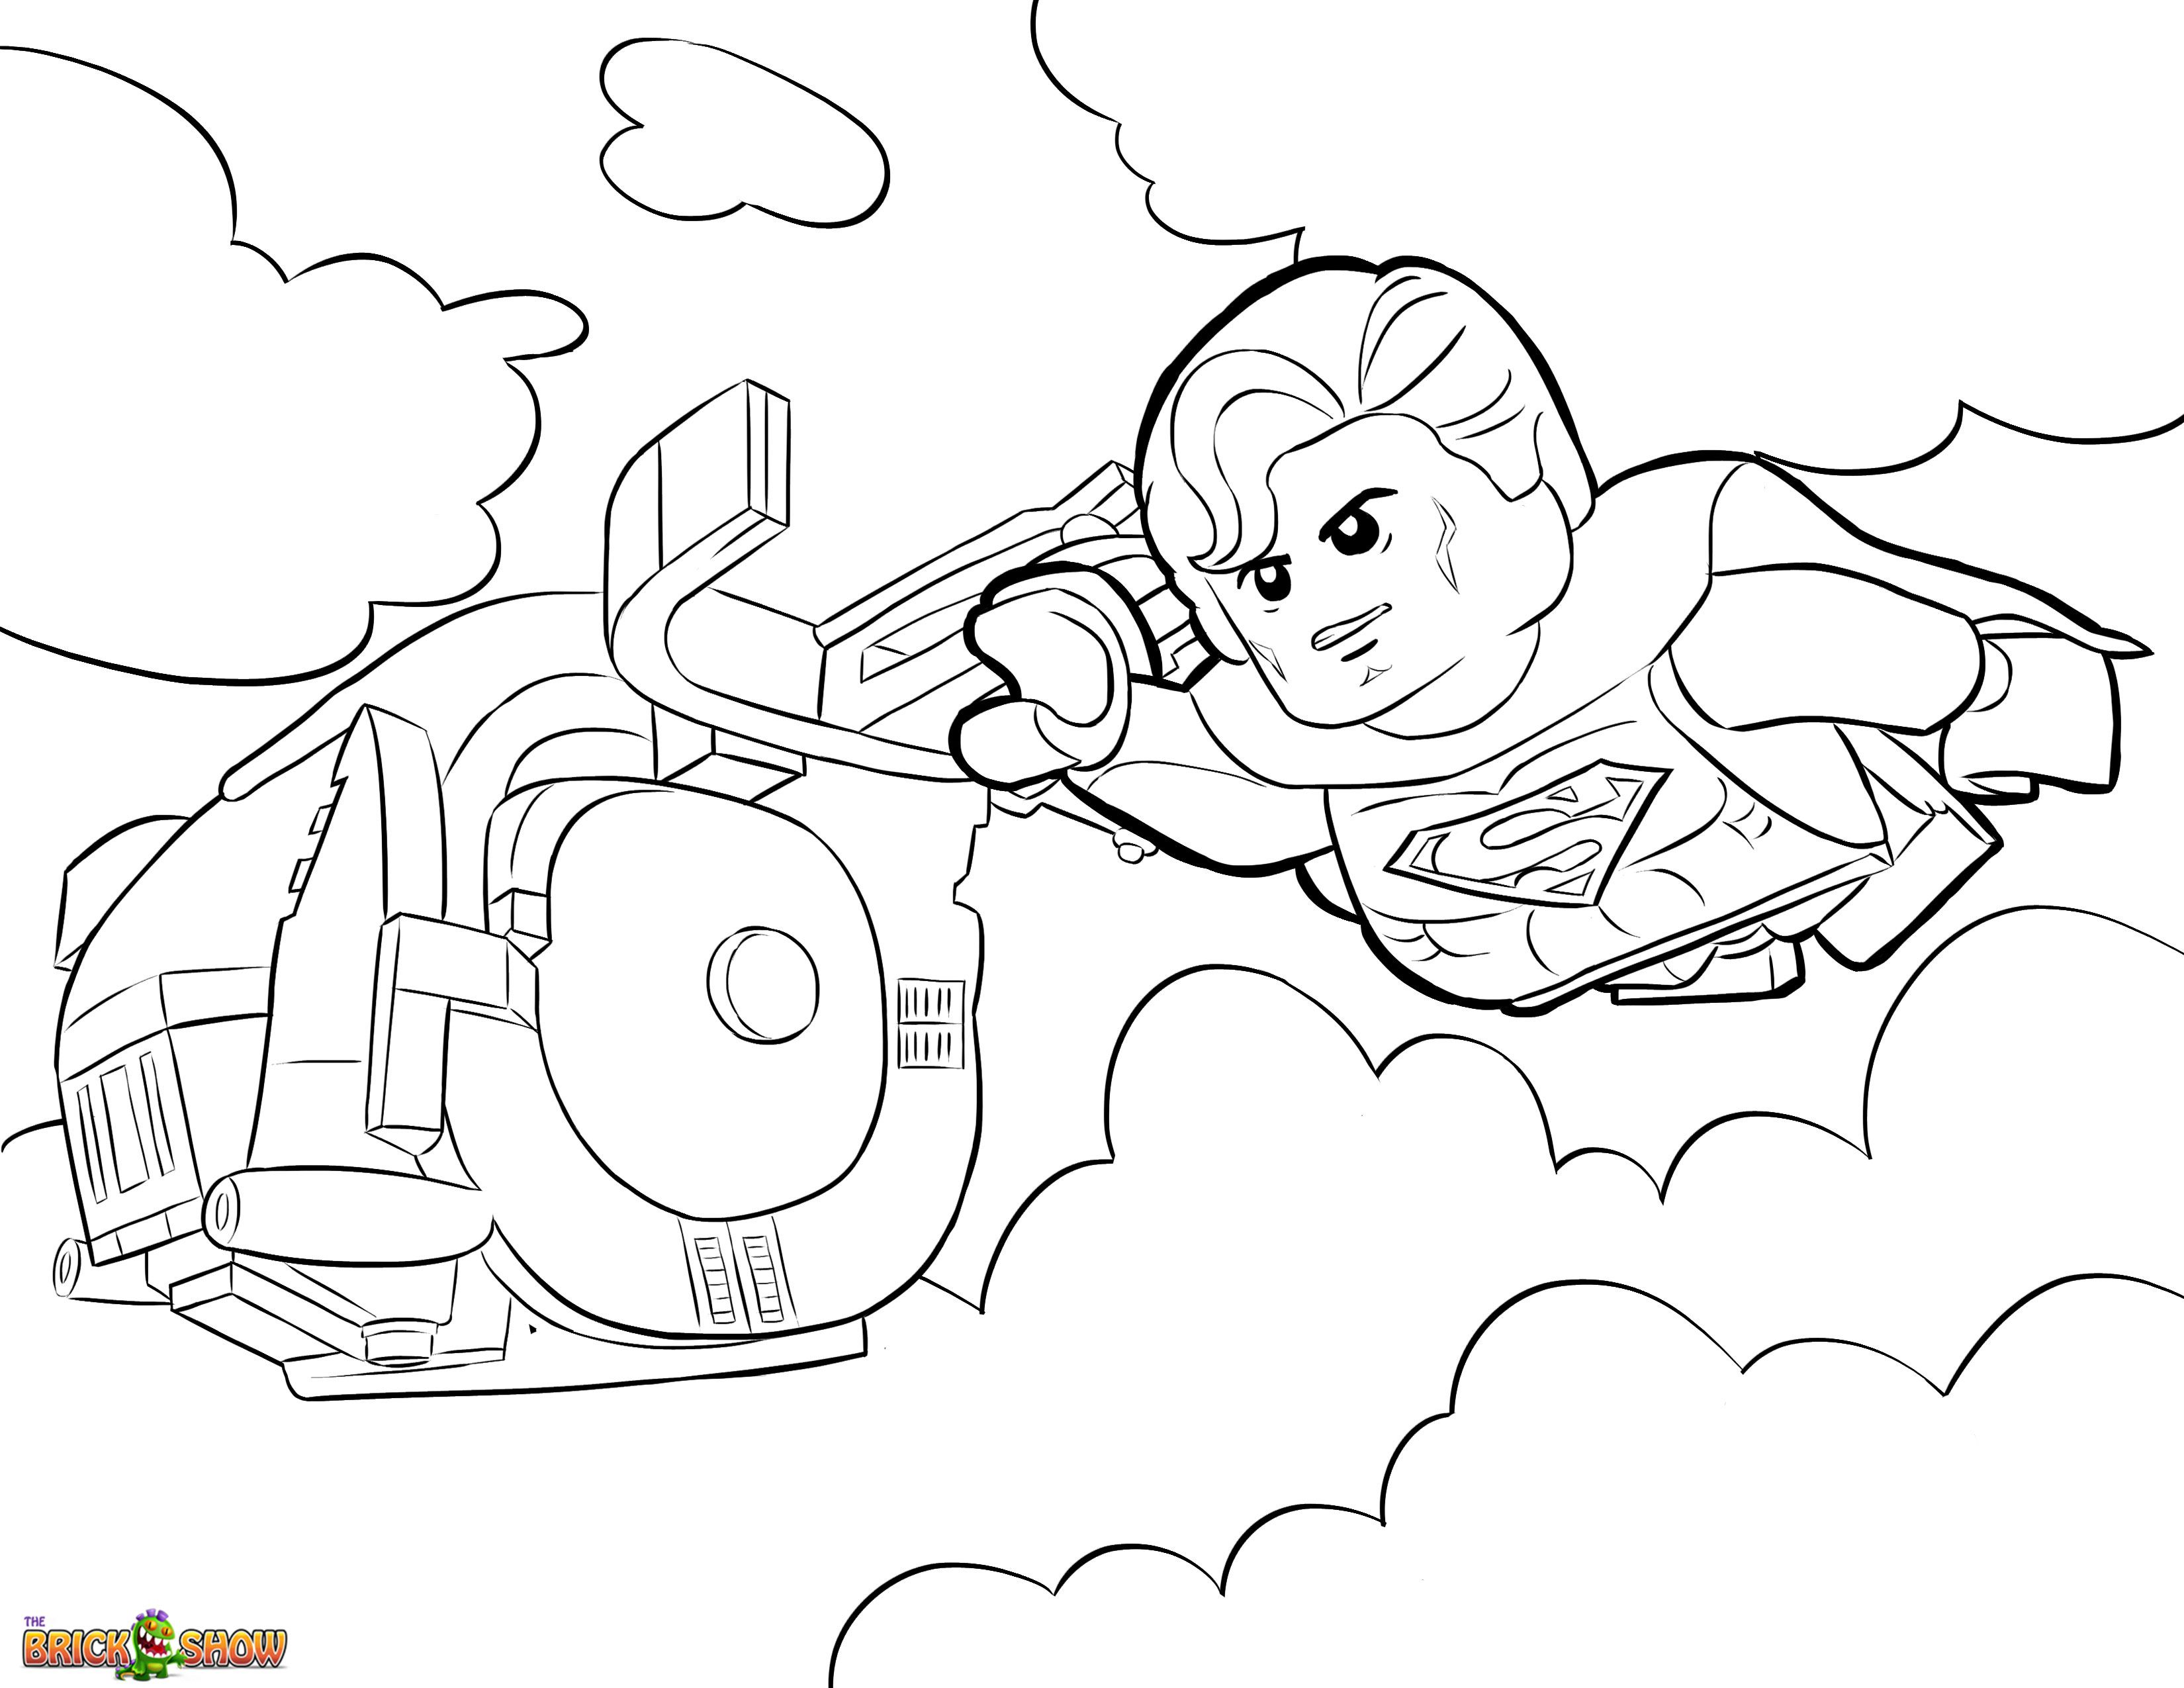 lego superman coloring pages # 8